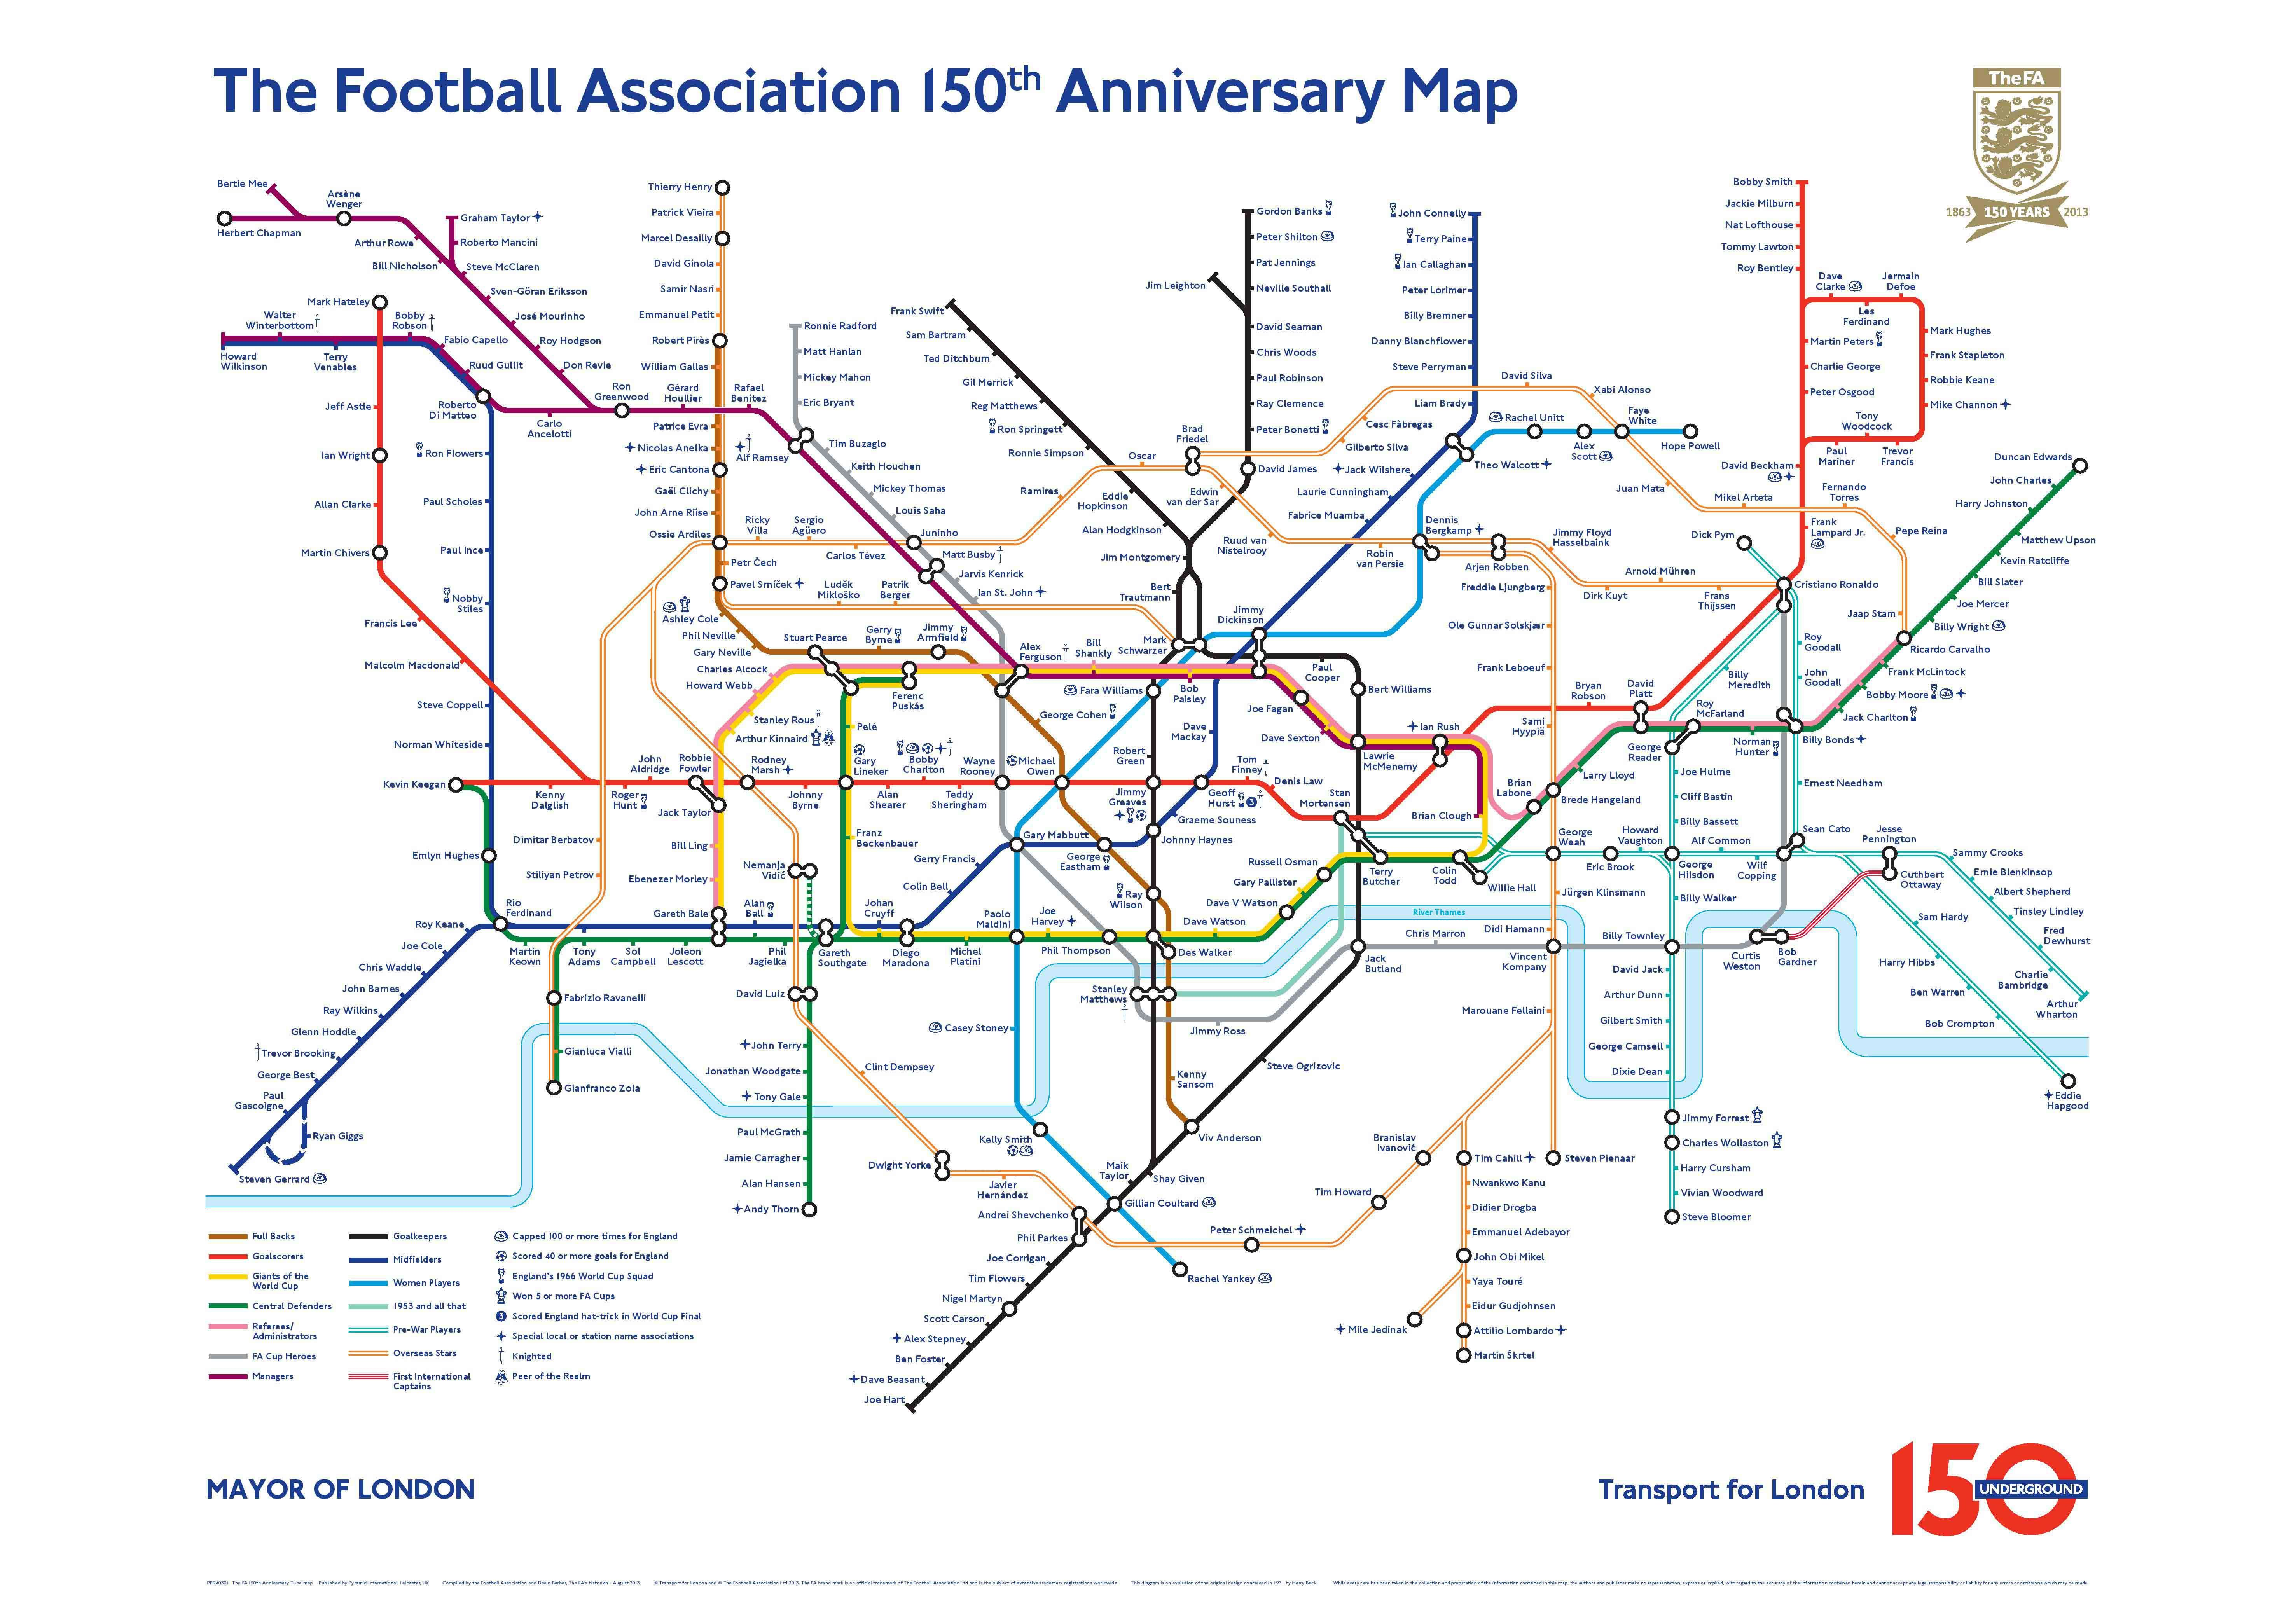 London Tube Map The Football Association 150th